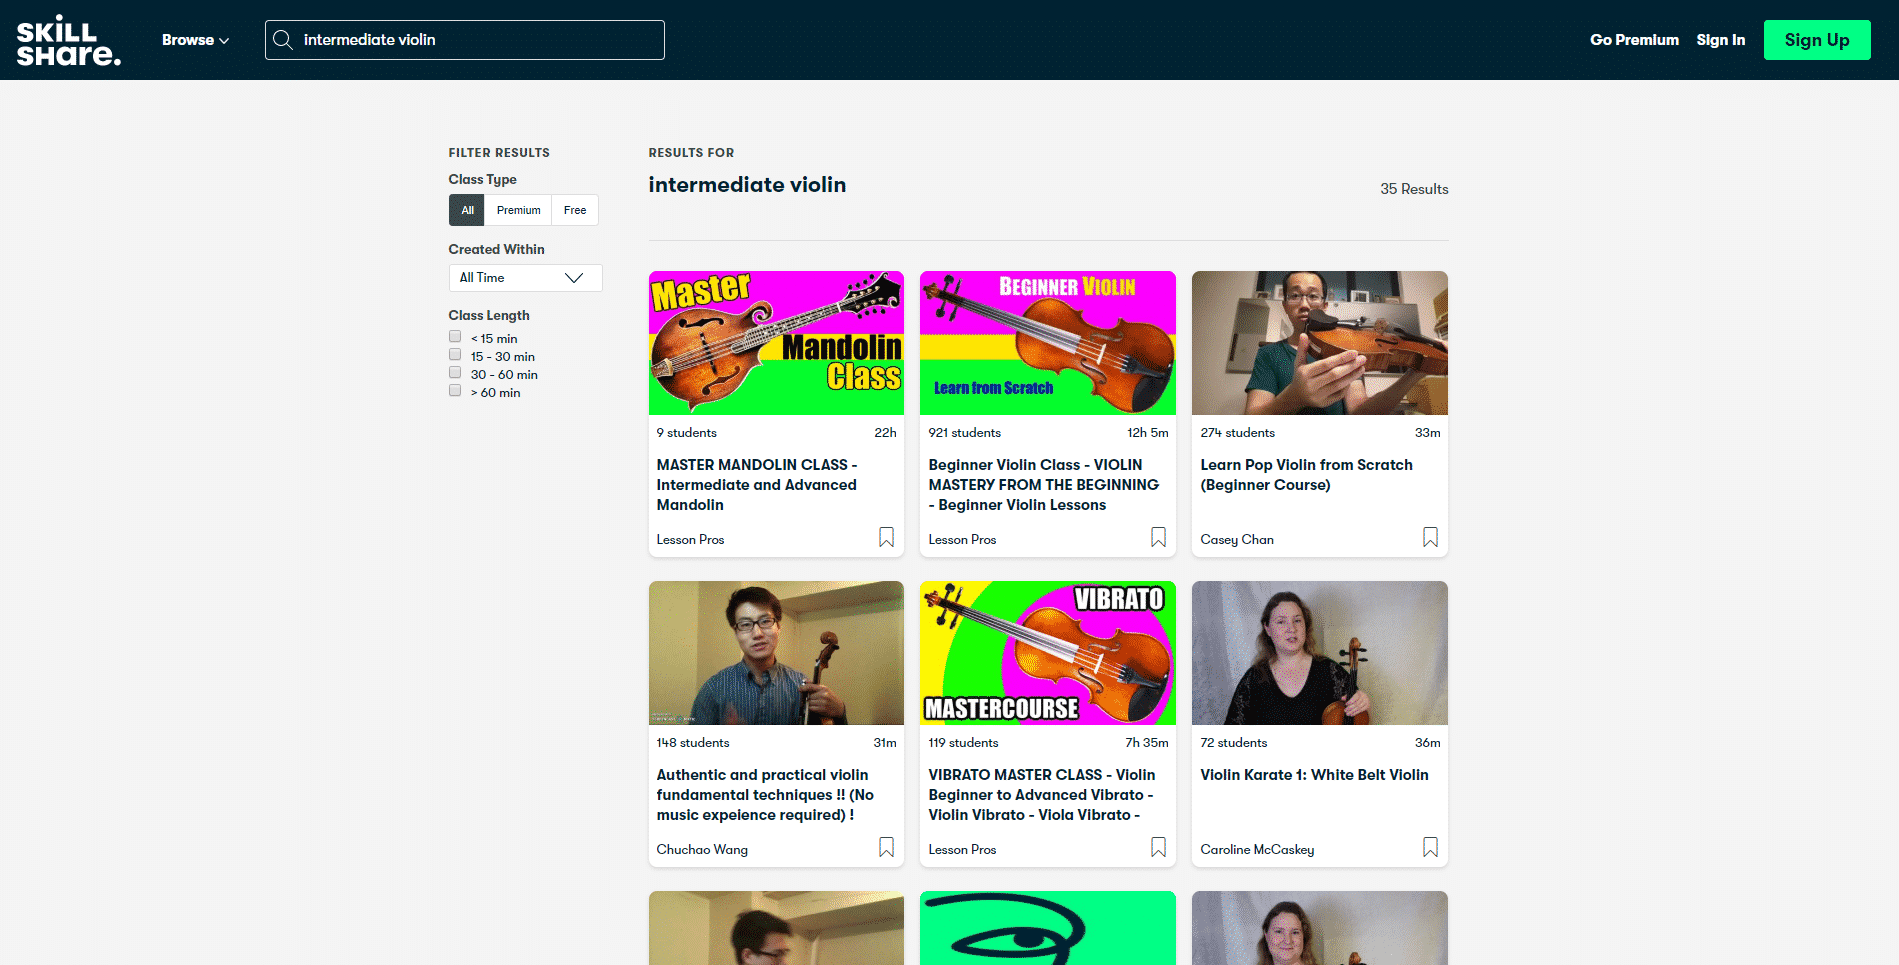 SkillShare Learn violin lessson for Intermediate